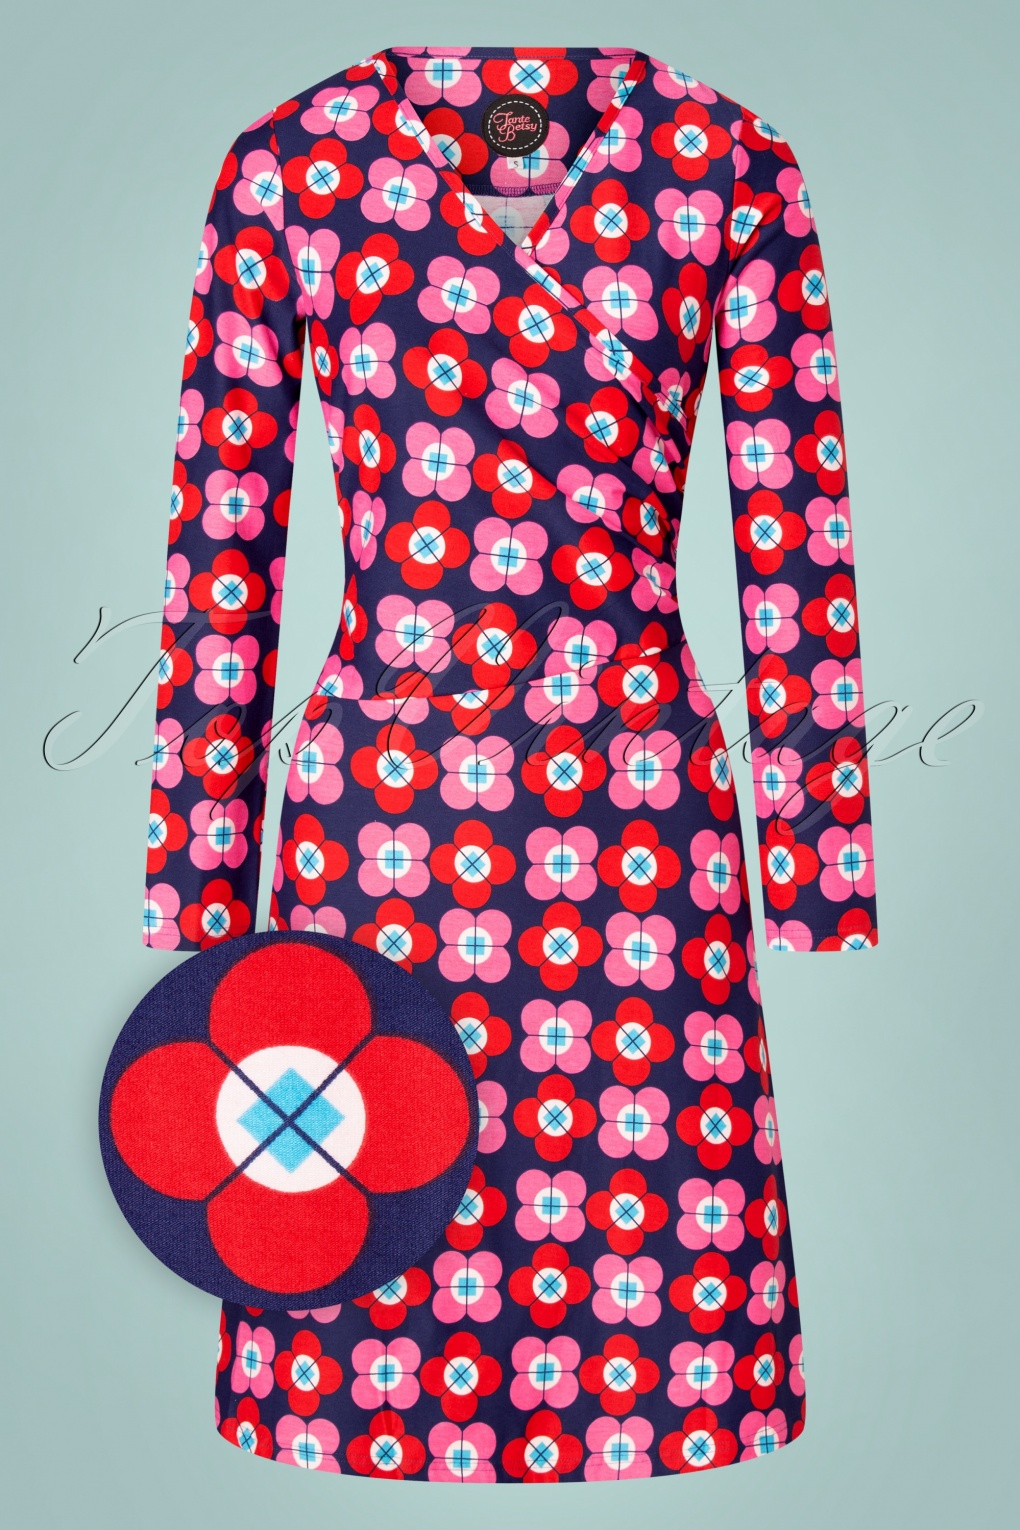 60s Dresses | 1960s Dresses Mod, Mini, Hippie 60s Tango Petal Dress in Navy £82.52 AT vintagedancer.com